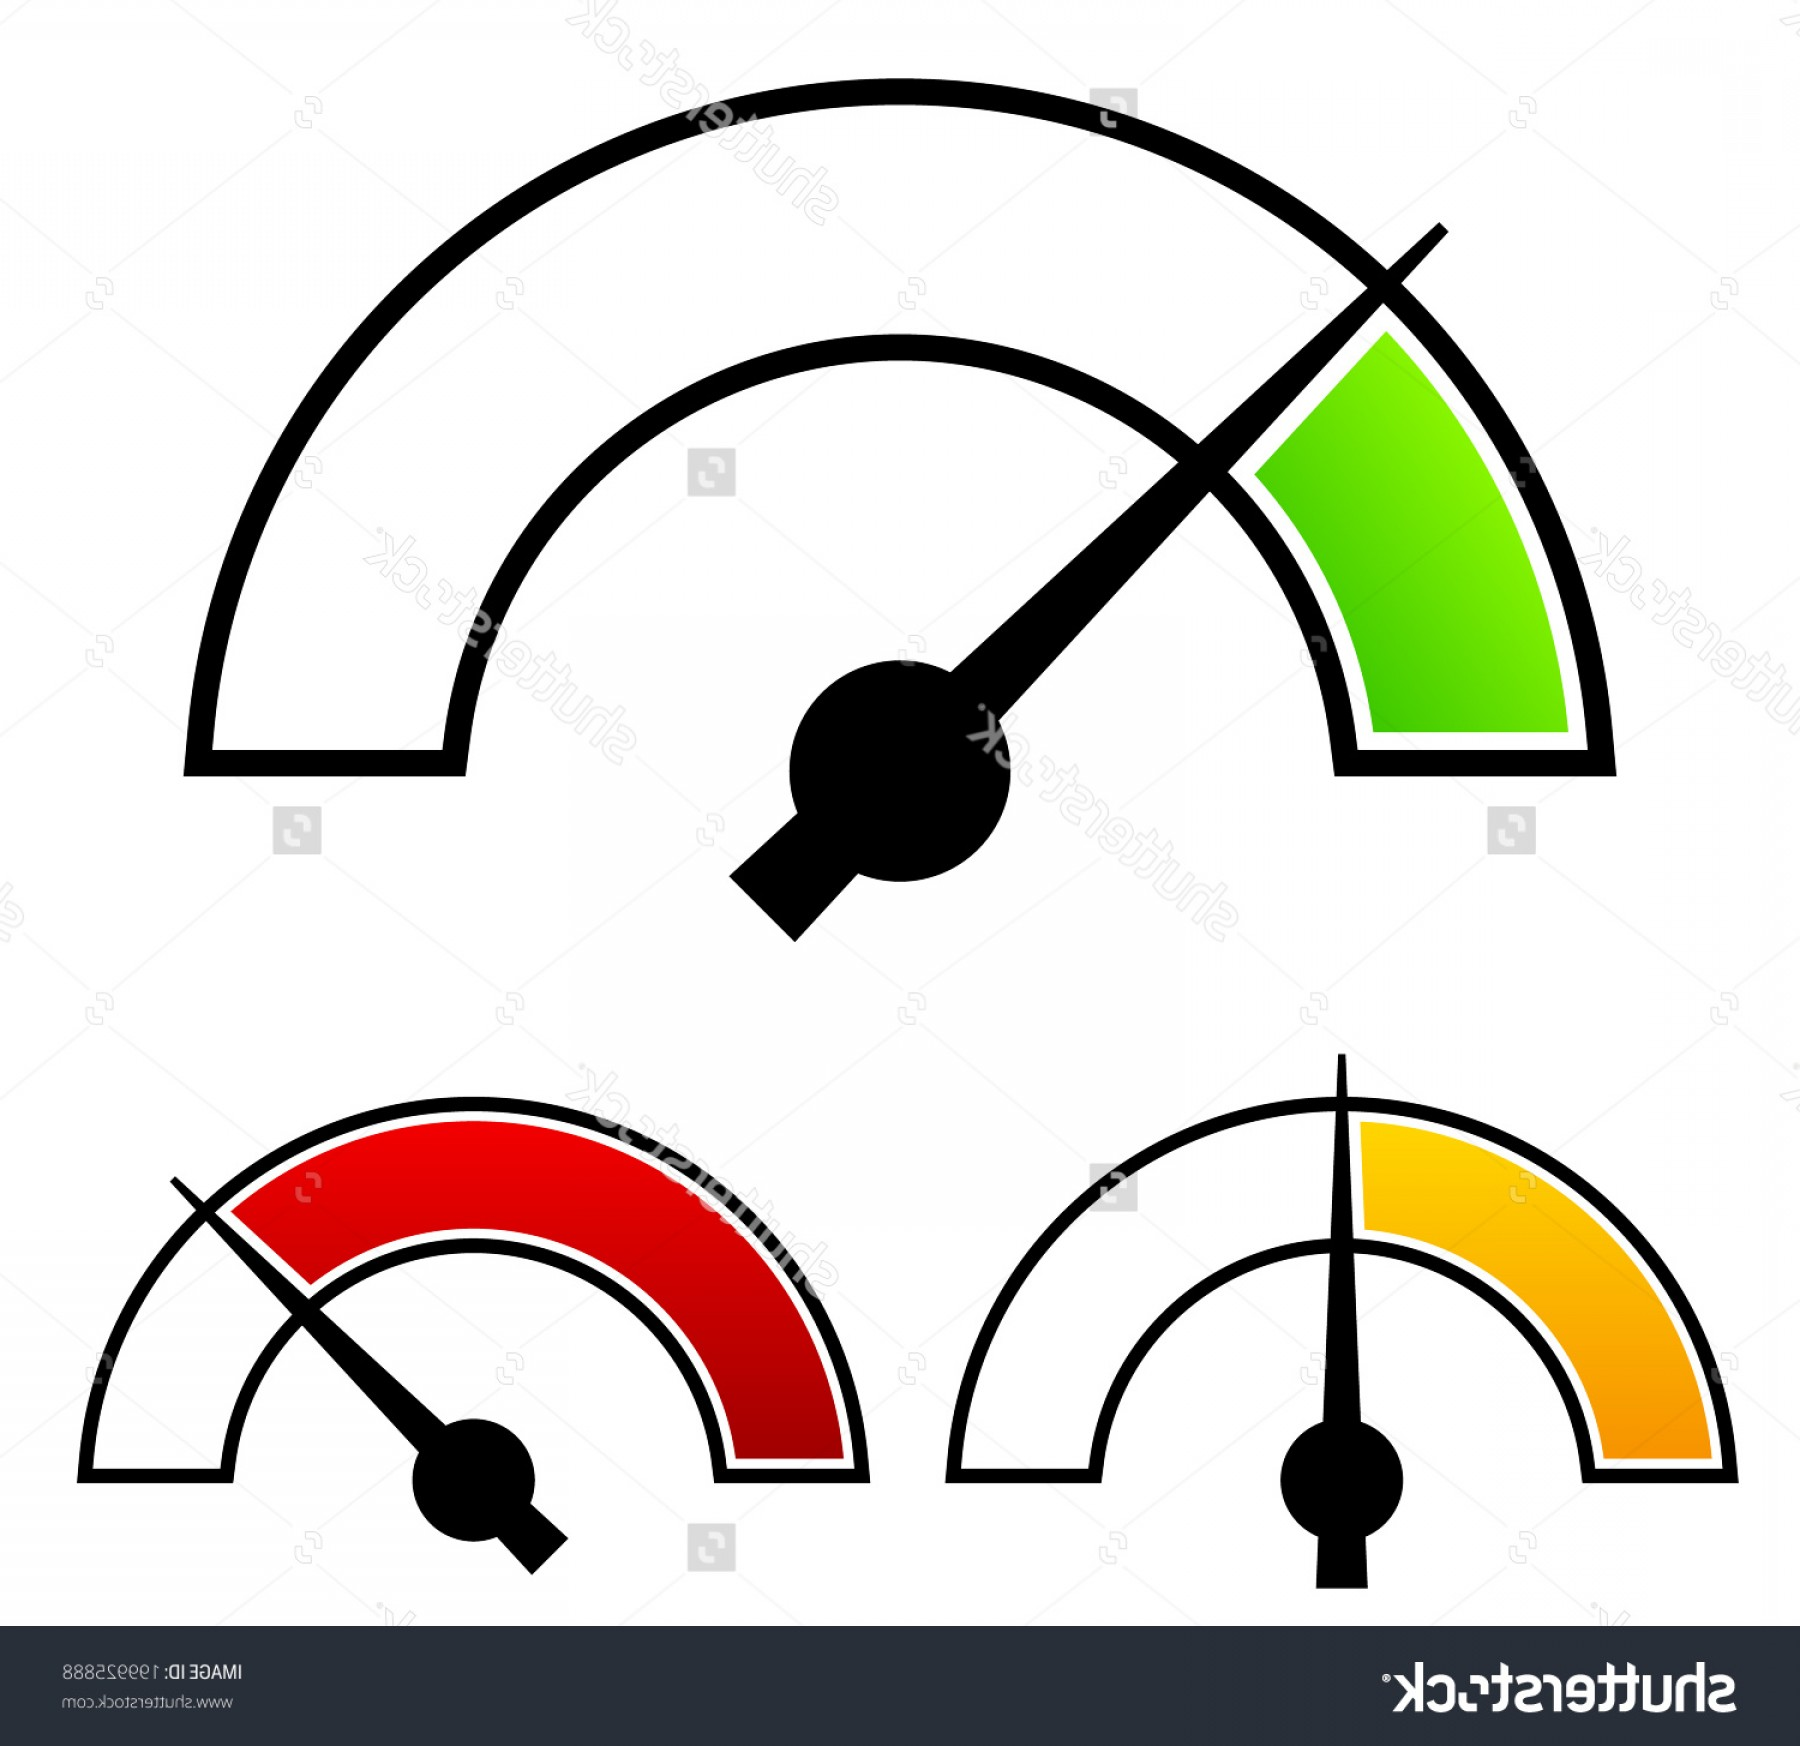 Low High Meter Vector: Gauge Meter Templates Pressure Level Concepts